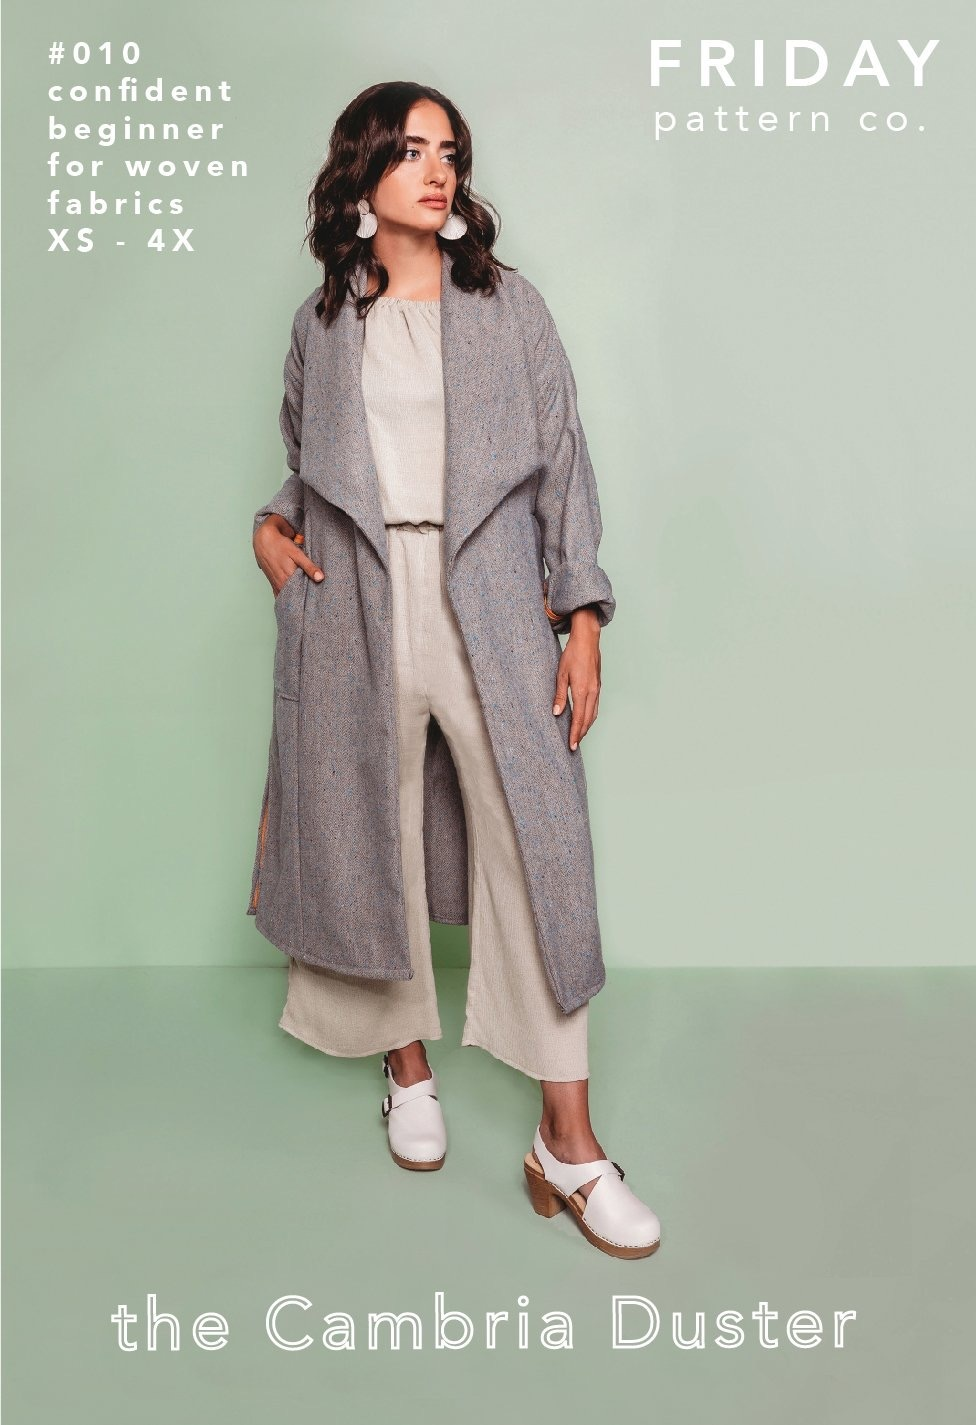 Friday Pattern Co. : the Cambria Duster